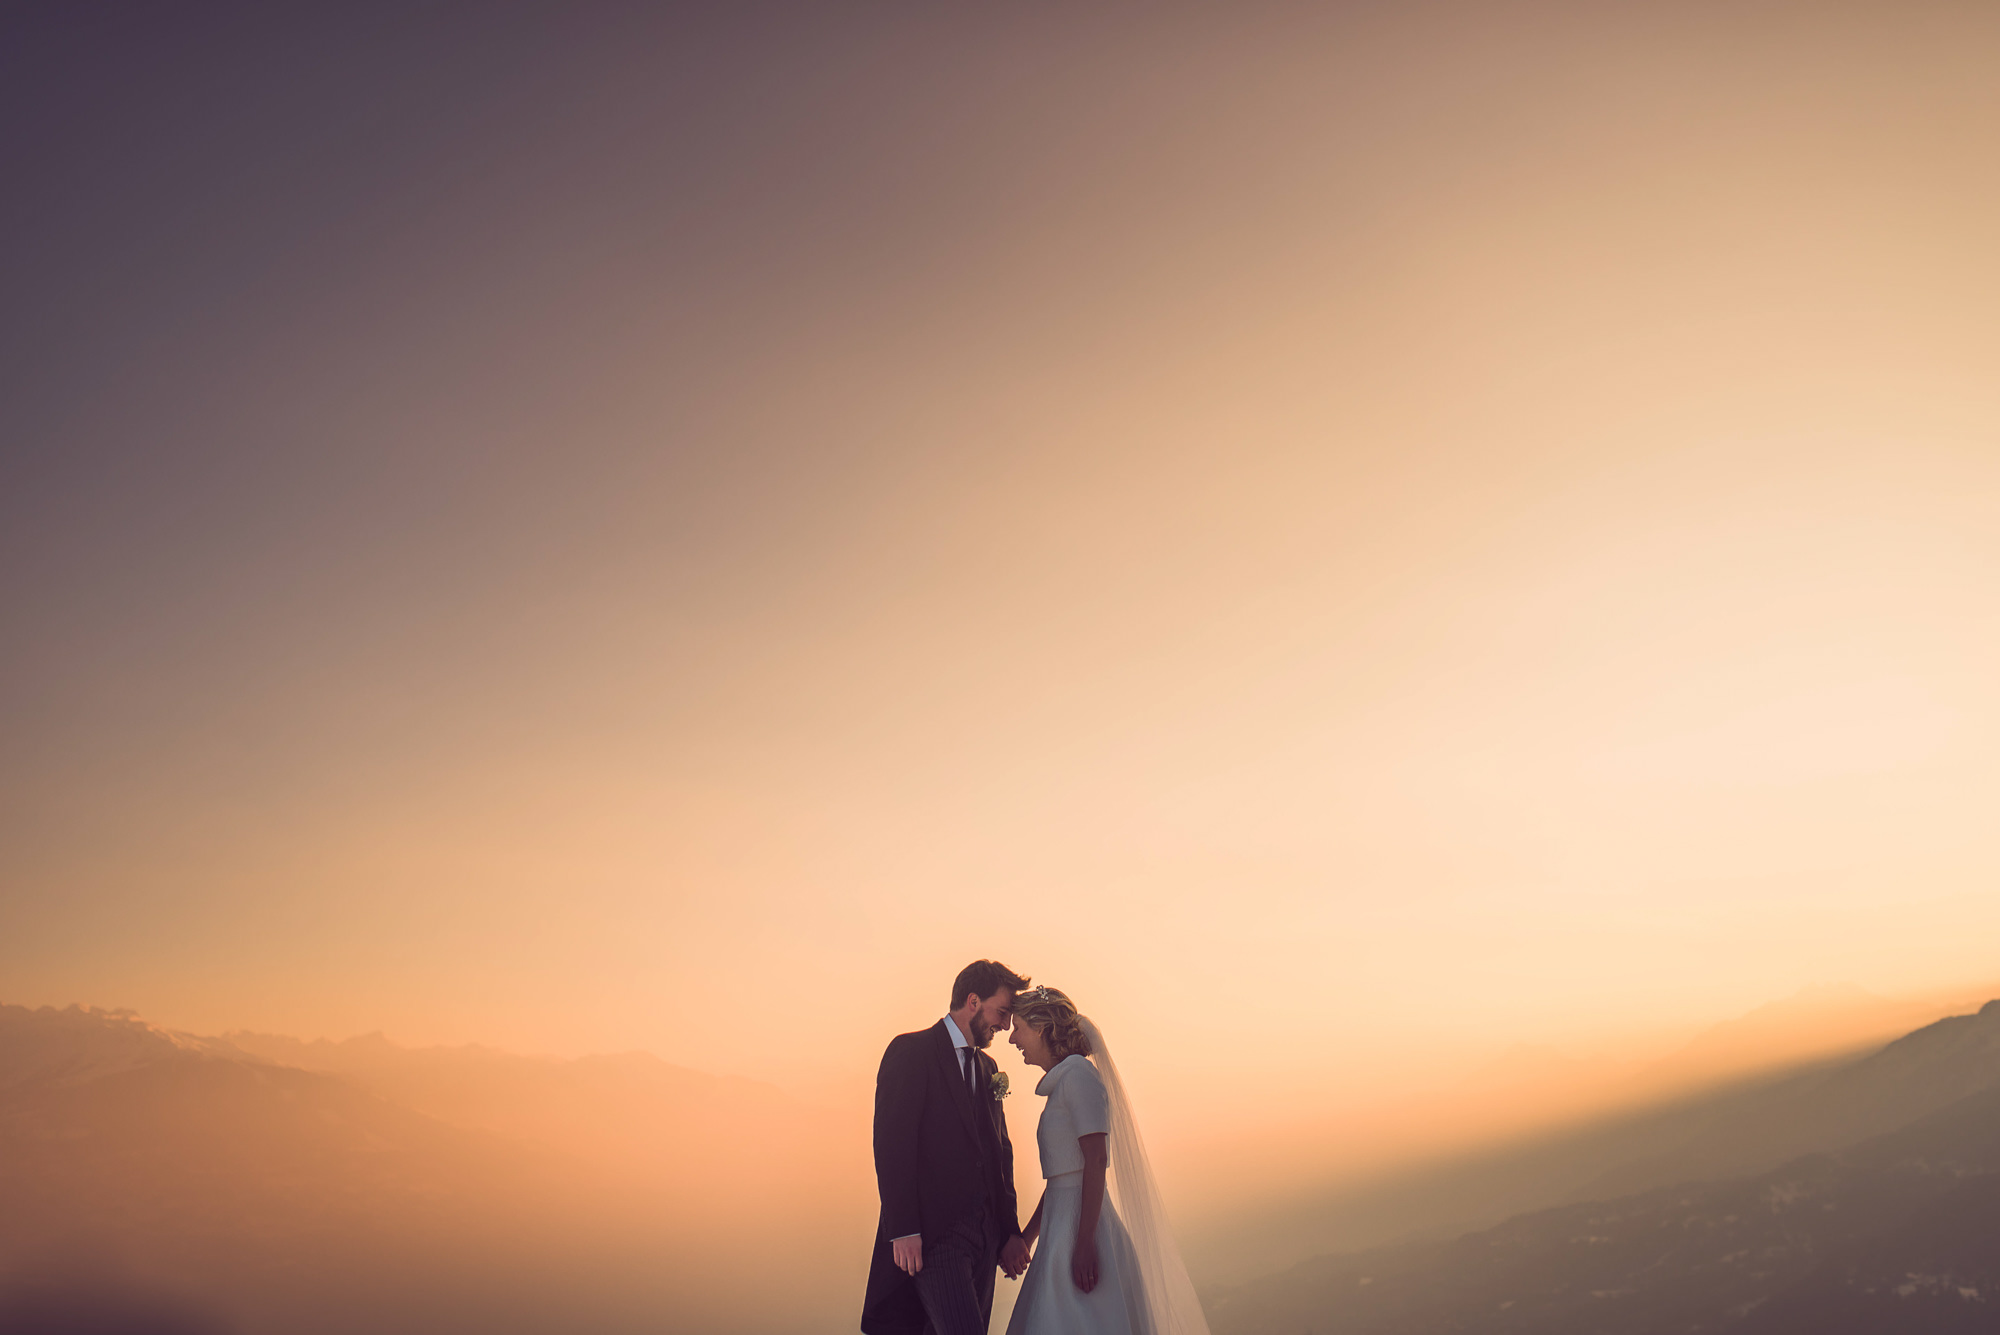 Sunset couples portrait photo by Nordica Photography